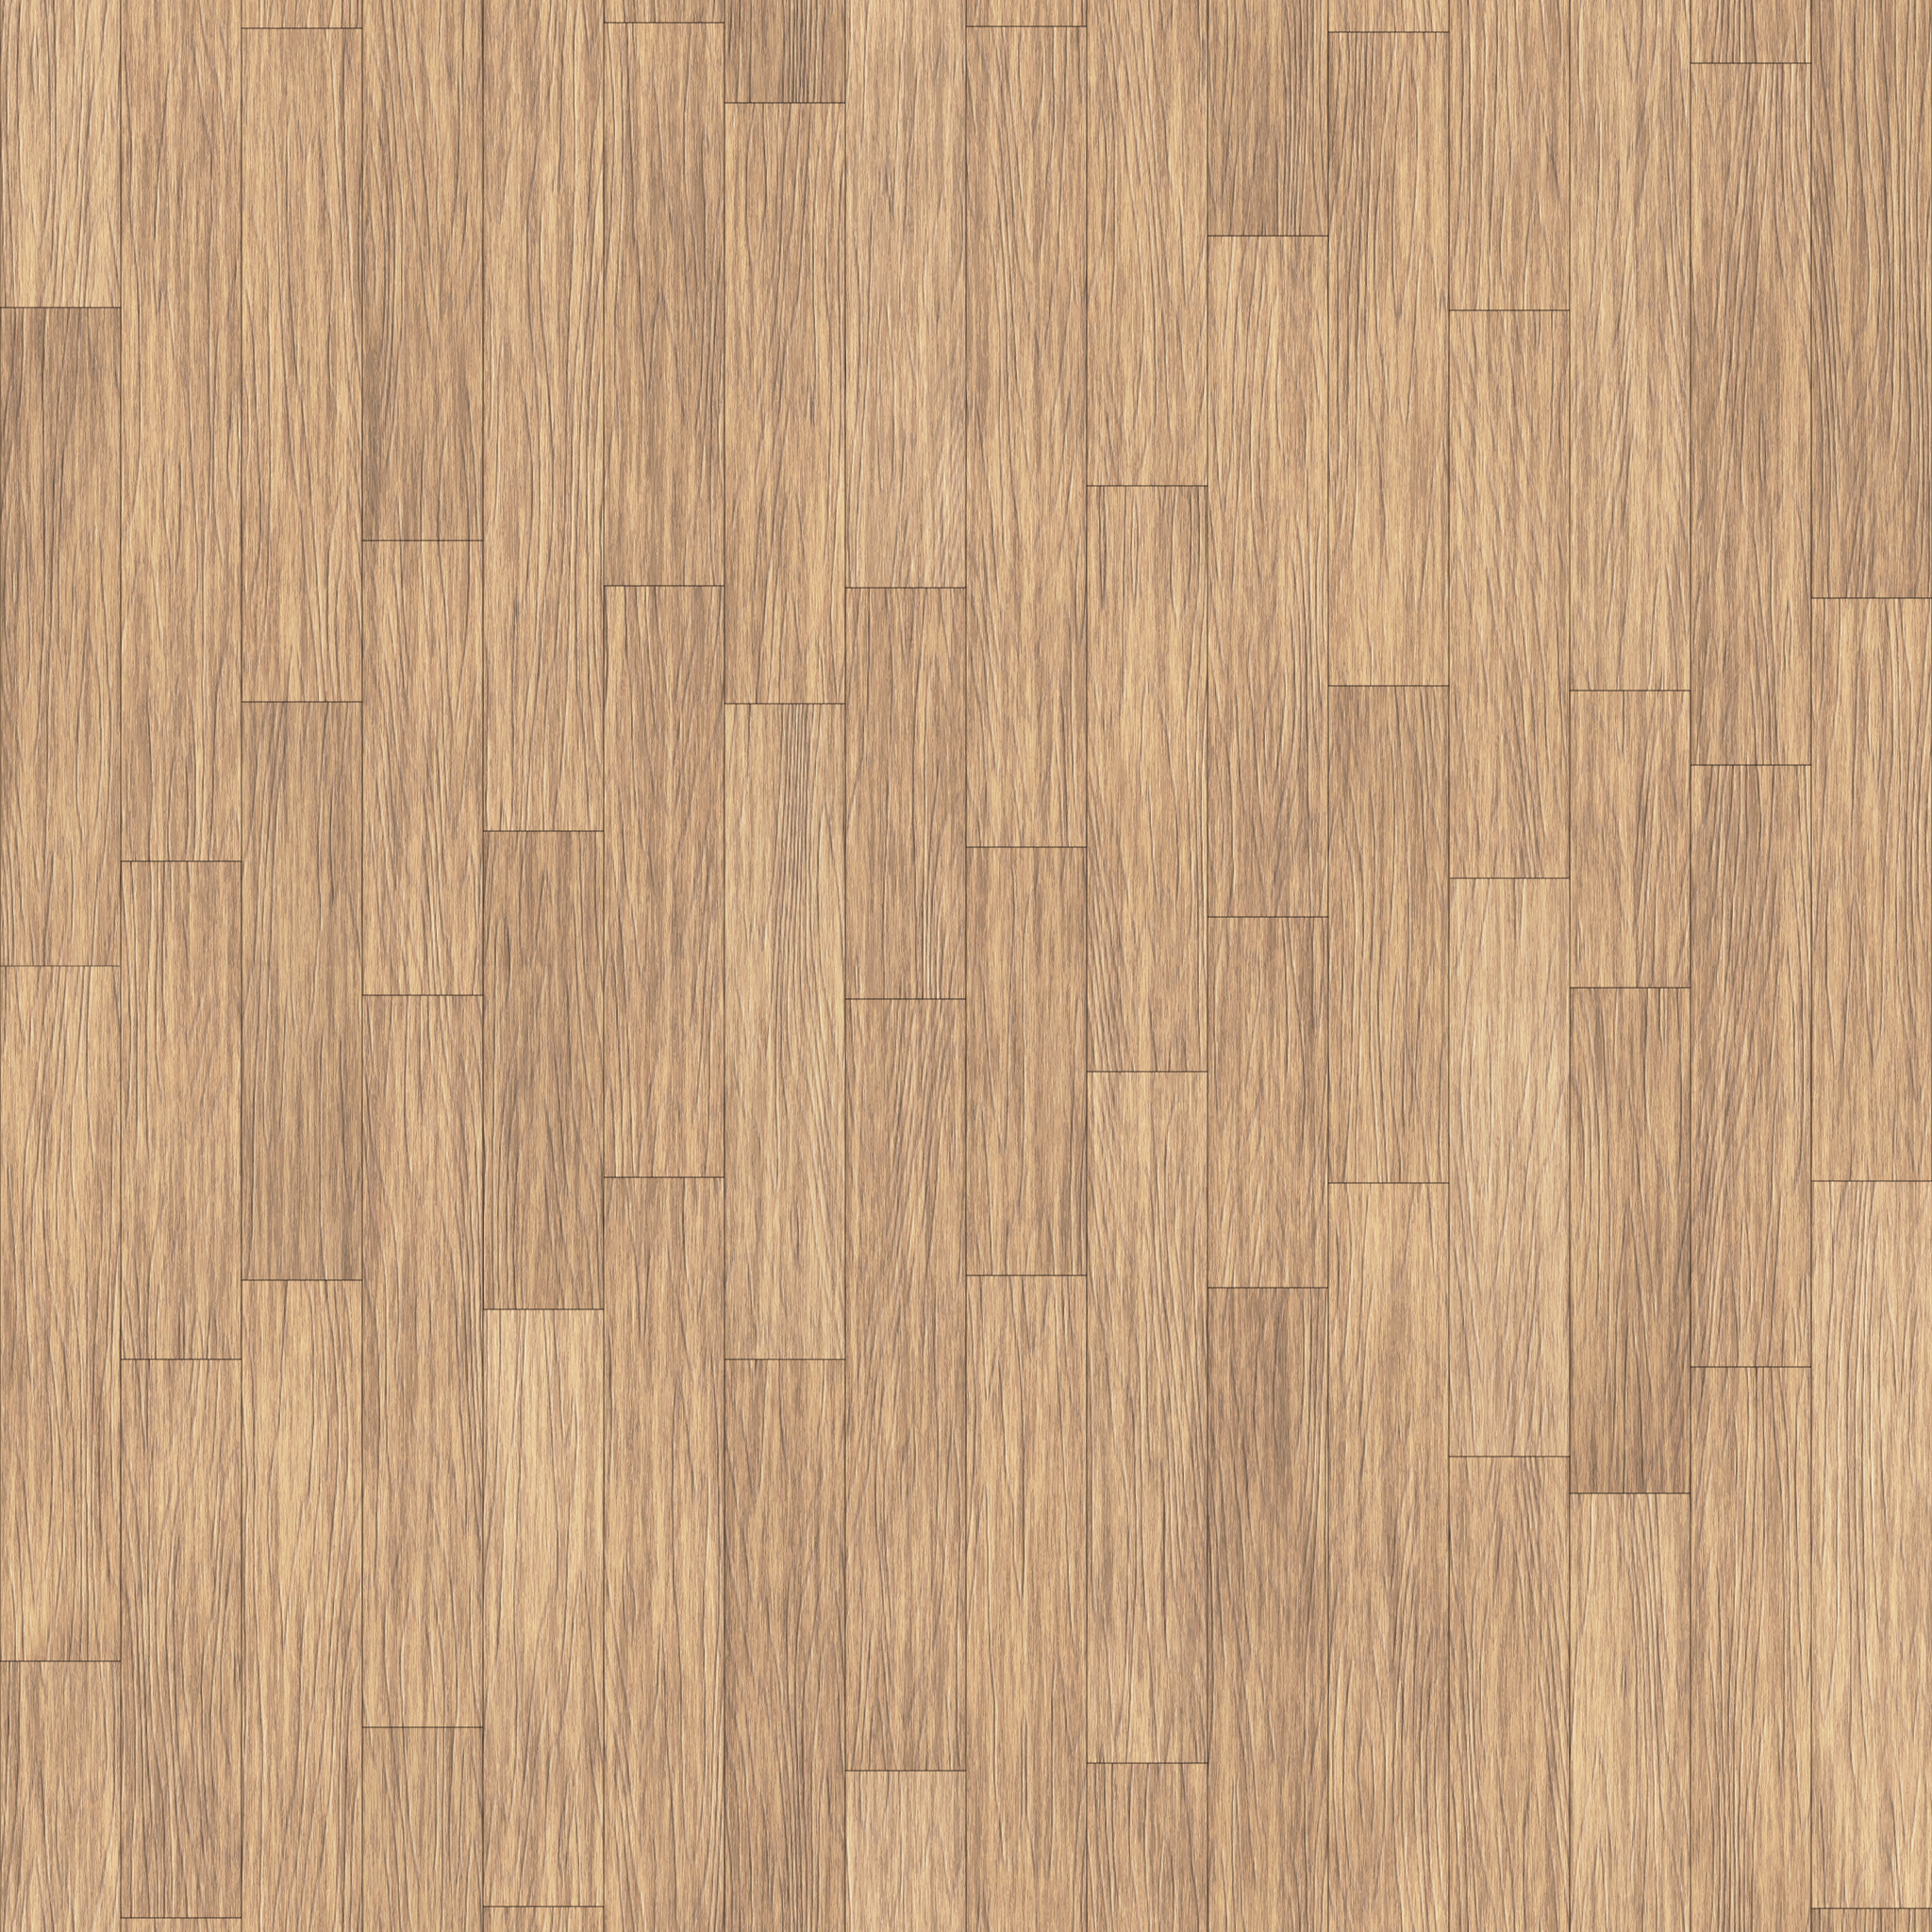 Wood floor texture home design jobs for Floor wood texture